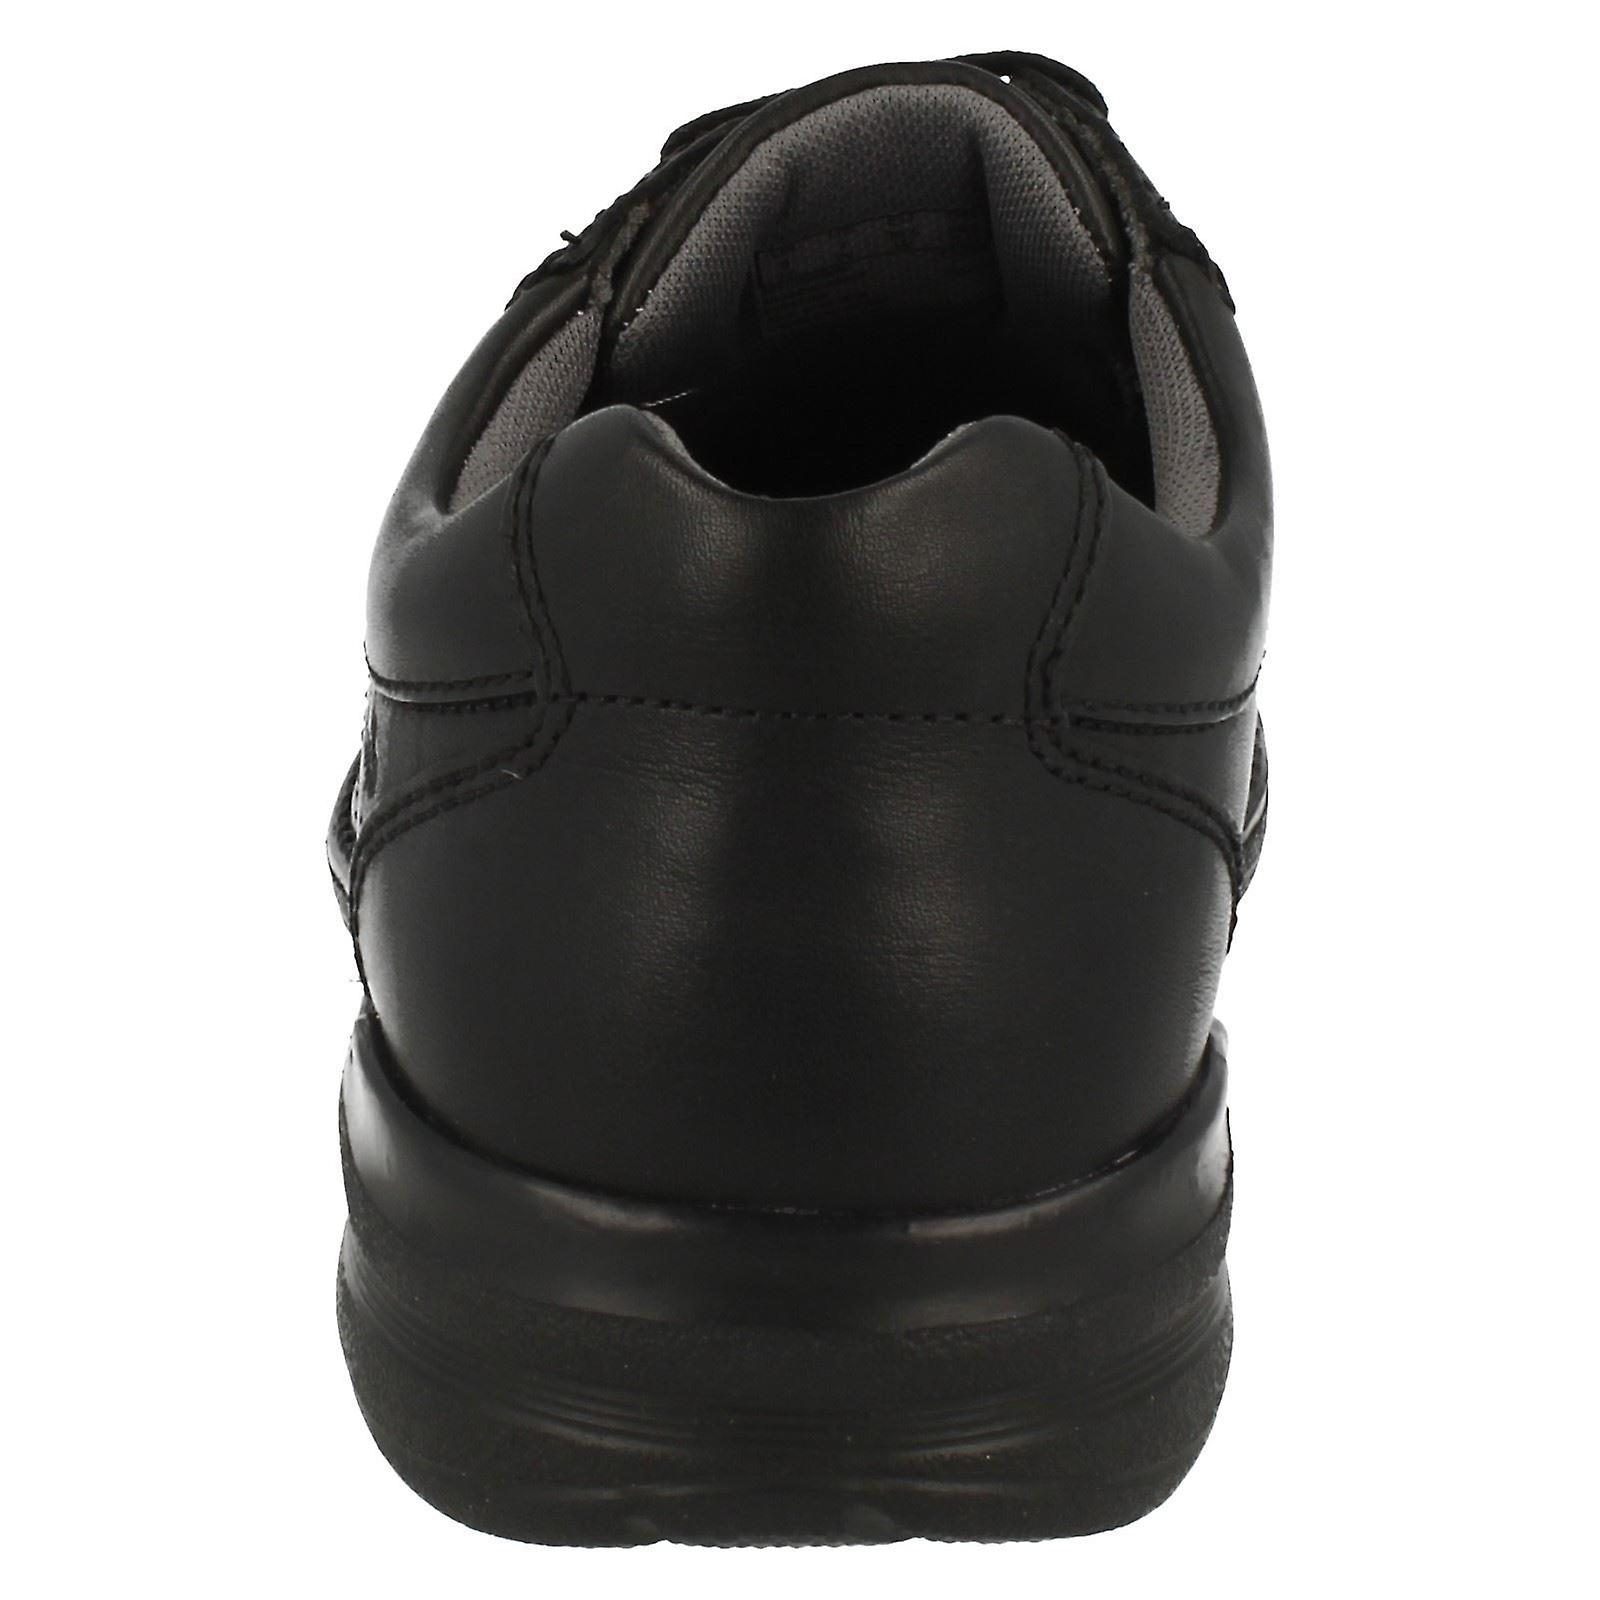 popular stores new high popular brand Mens Clarks Shoes Extra Wide Width Keeler Walk